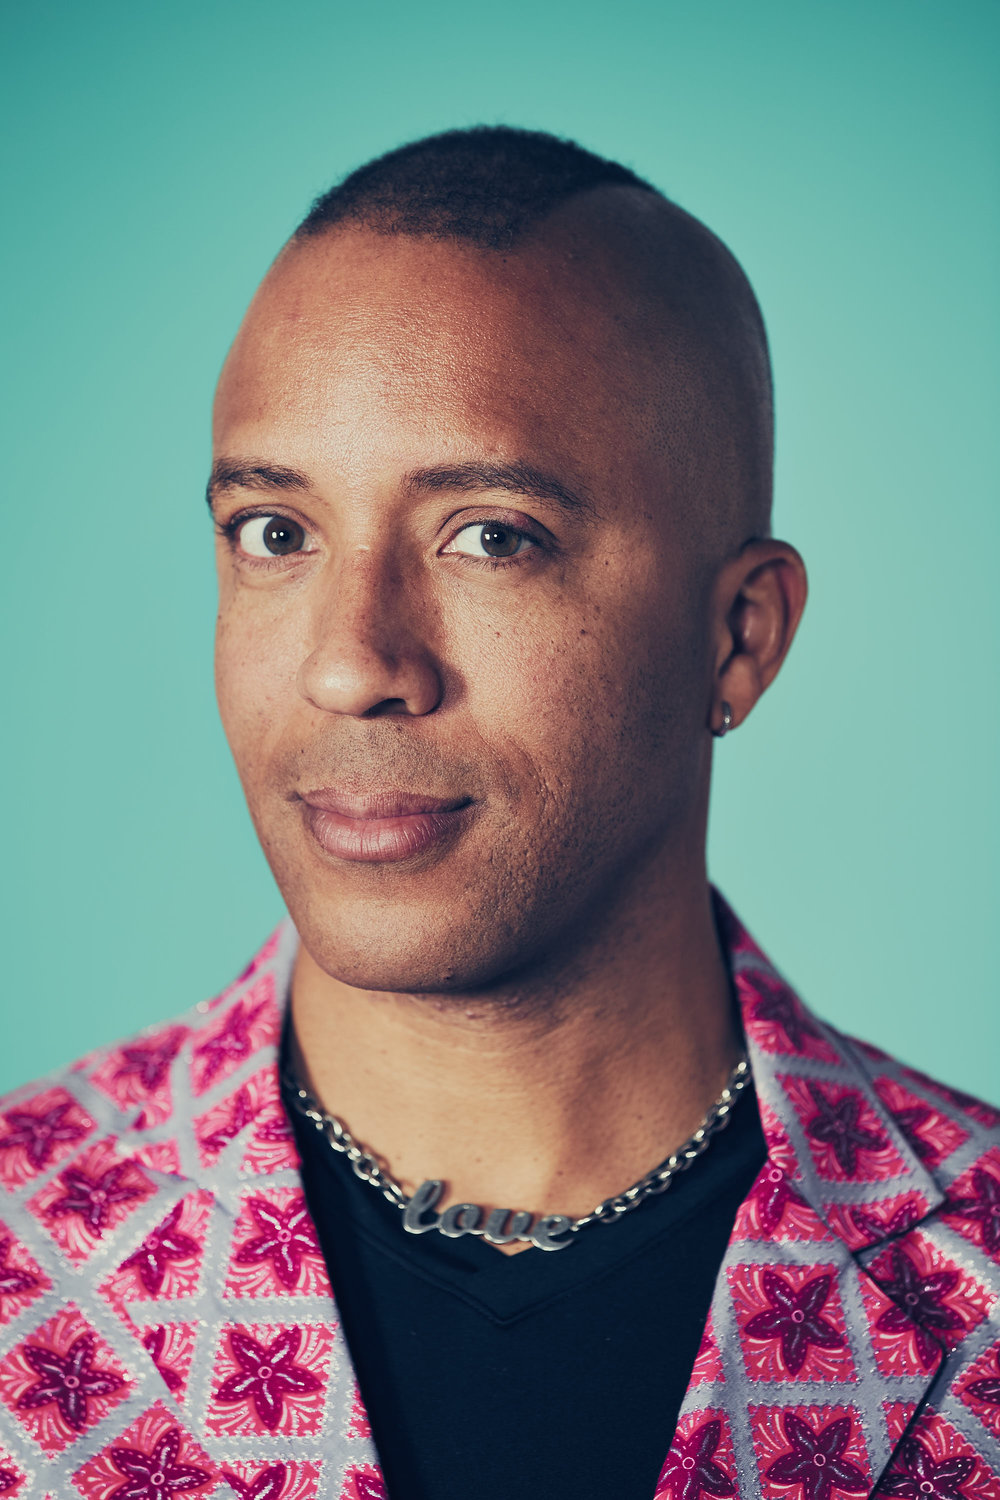 "Troy Jackson stands at the intersection of his identities, he is an Afro-Indigenous, Gay, Muslim, Performer, Writer and Host. His work has been shown at the AGO (Art Gallery of Ontario), The Inside Out Film Festival and TIFF (Toronto International Film Festival). He  is one of the co-owners of the oldest LGBTQ bookshop on the planet, The Glad Day Bookshop.  He co-founded the El-Tawhid Juma Circle in 2007, taking on President responsibilities in 2010.  Jackson sites Black liberation theology as the foundation of why he wanted manifestETJC, he states that ""nobody should be sitting at the ""Back of the Bus"" unless they like the view from back there"" Jackson believes that all should be treated as equals in life and in ritual prayer without apology."